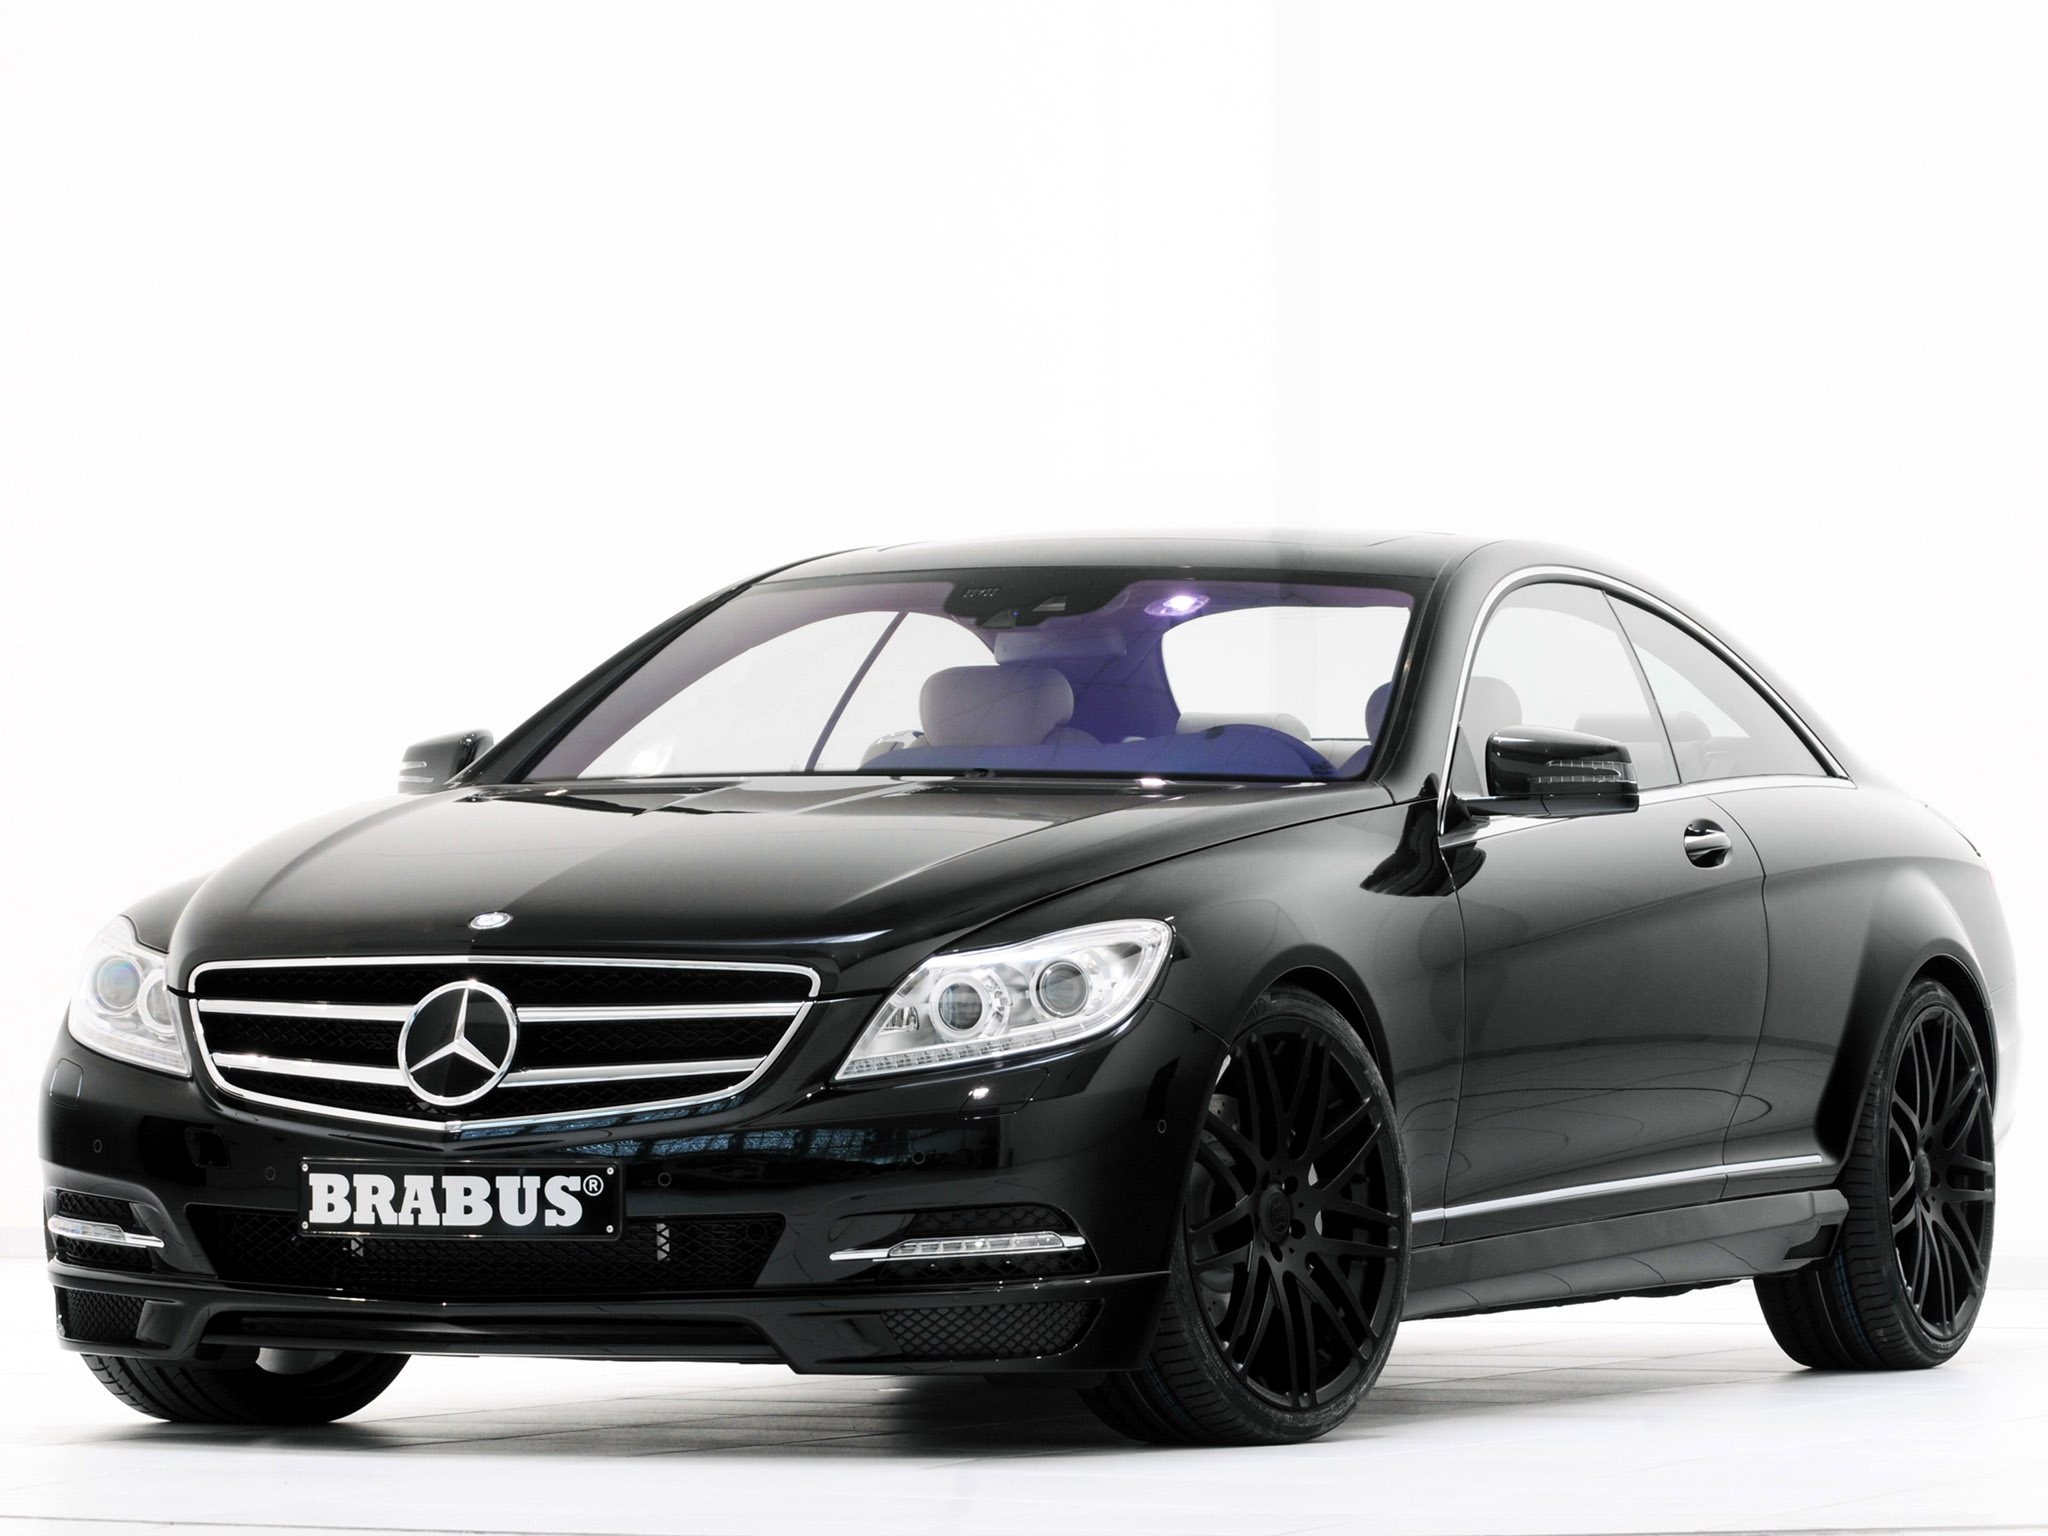 brabus mercedes cl500 4matic c216 2011 brabus mercedes. Black Bedroom Furniture Sets. Home Design Ideas